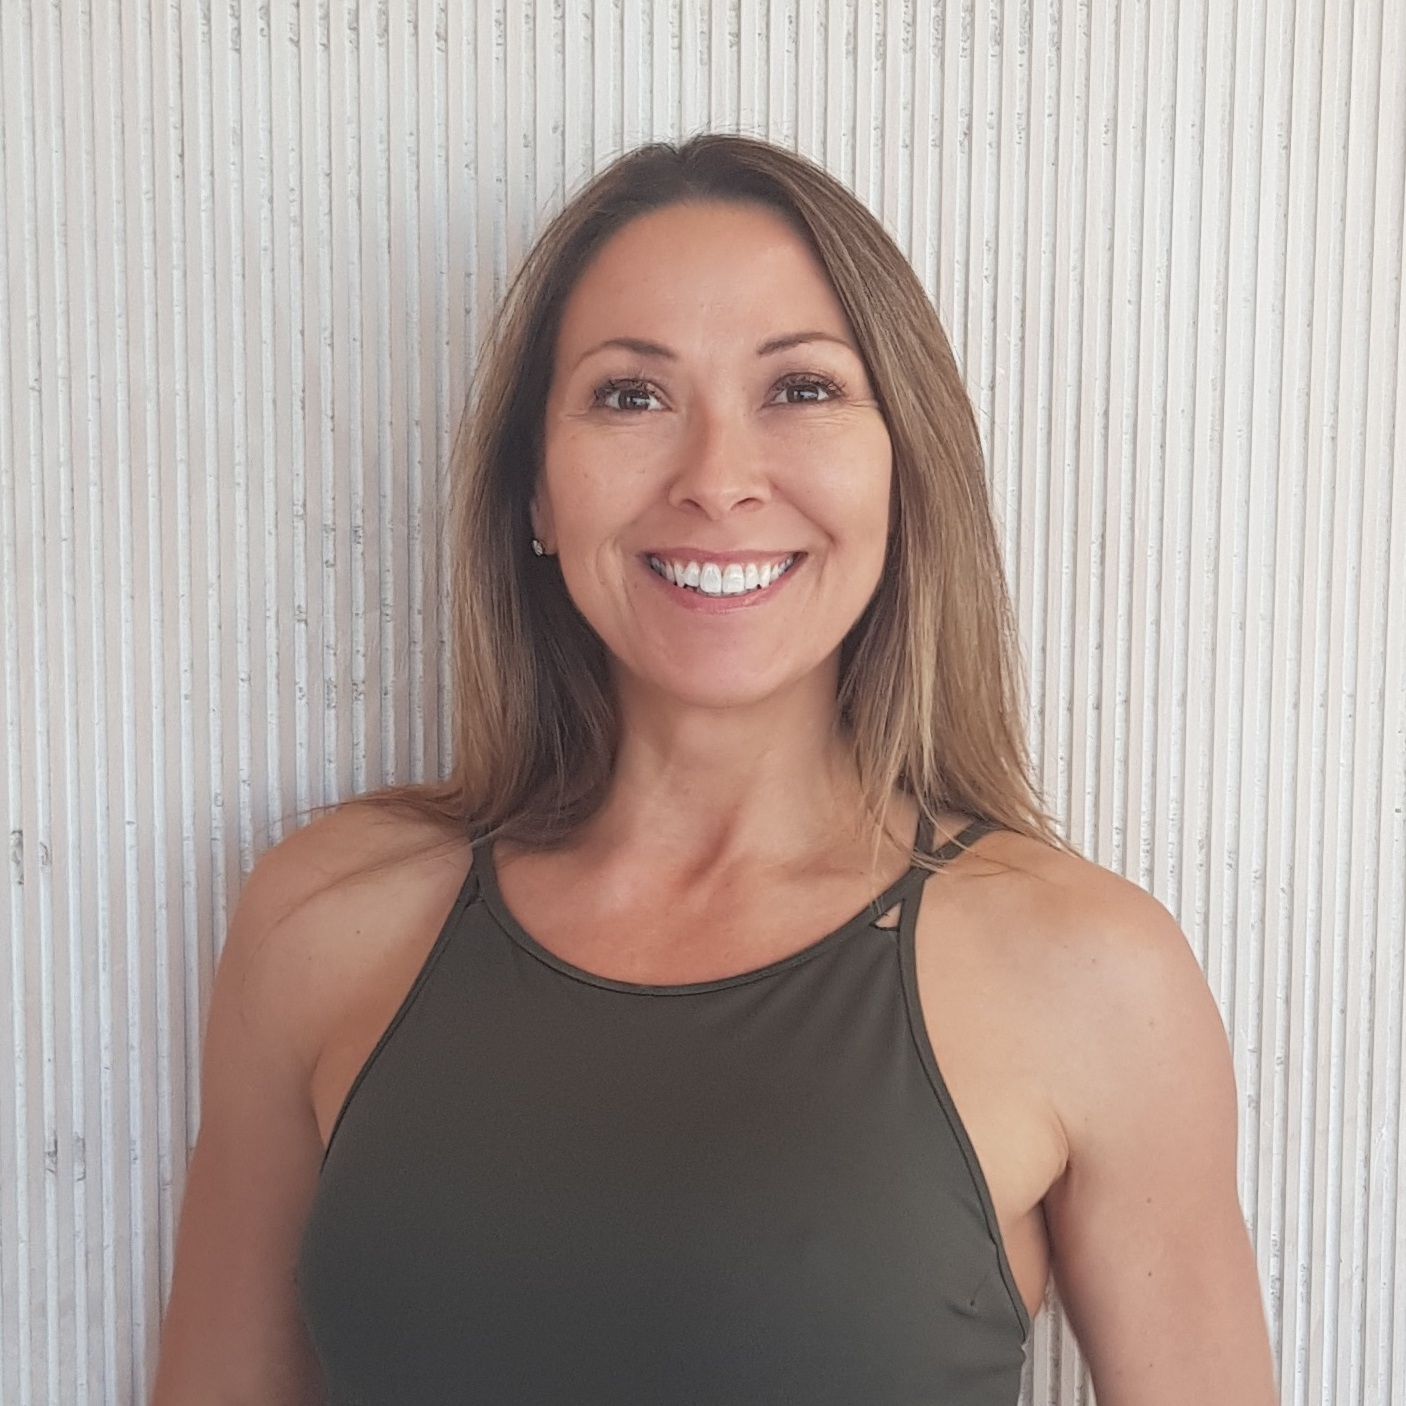 Keran Murphy - Yoga LeadDiscovering her love for yoga 18 years ago and having trained under yoga guru Baron Baptiste, Keran focuses on strength and balance, and has a passion for promoting proper alignment and building core strength.